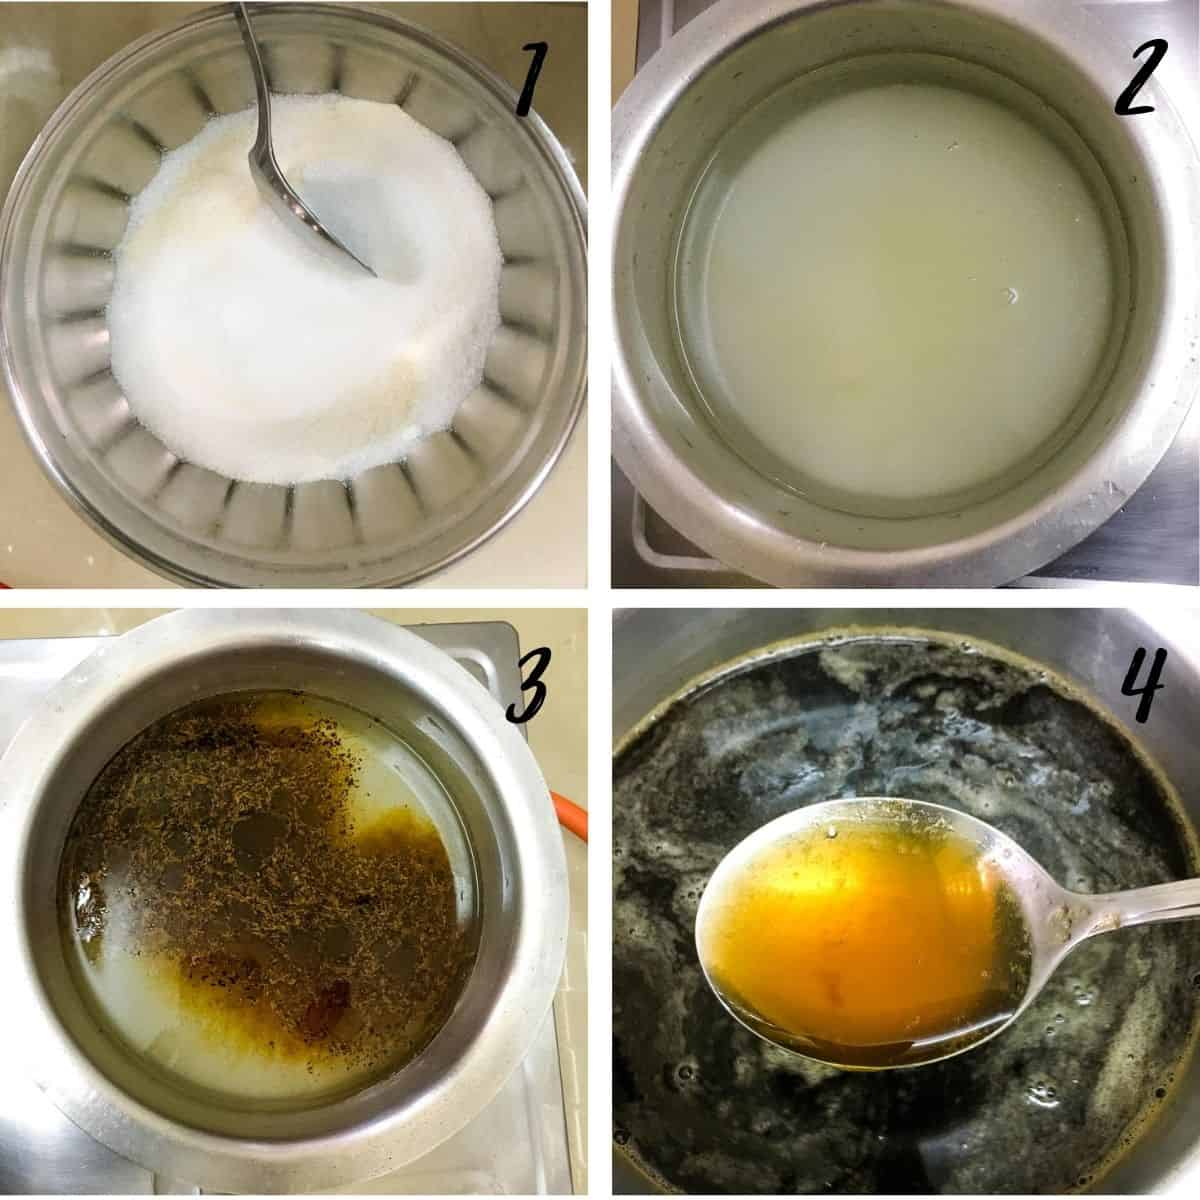 A poster of 4 images showing sugar and jelly powder in one bowl, jelly solution in a pot, coffee added to the jelly pot and a scoop of the solution in a spoon